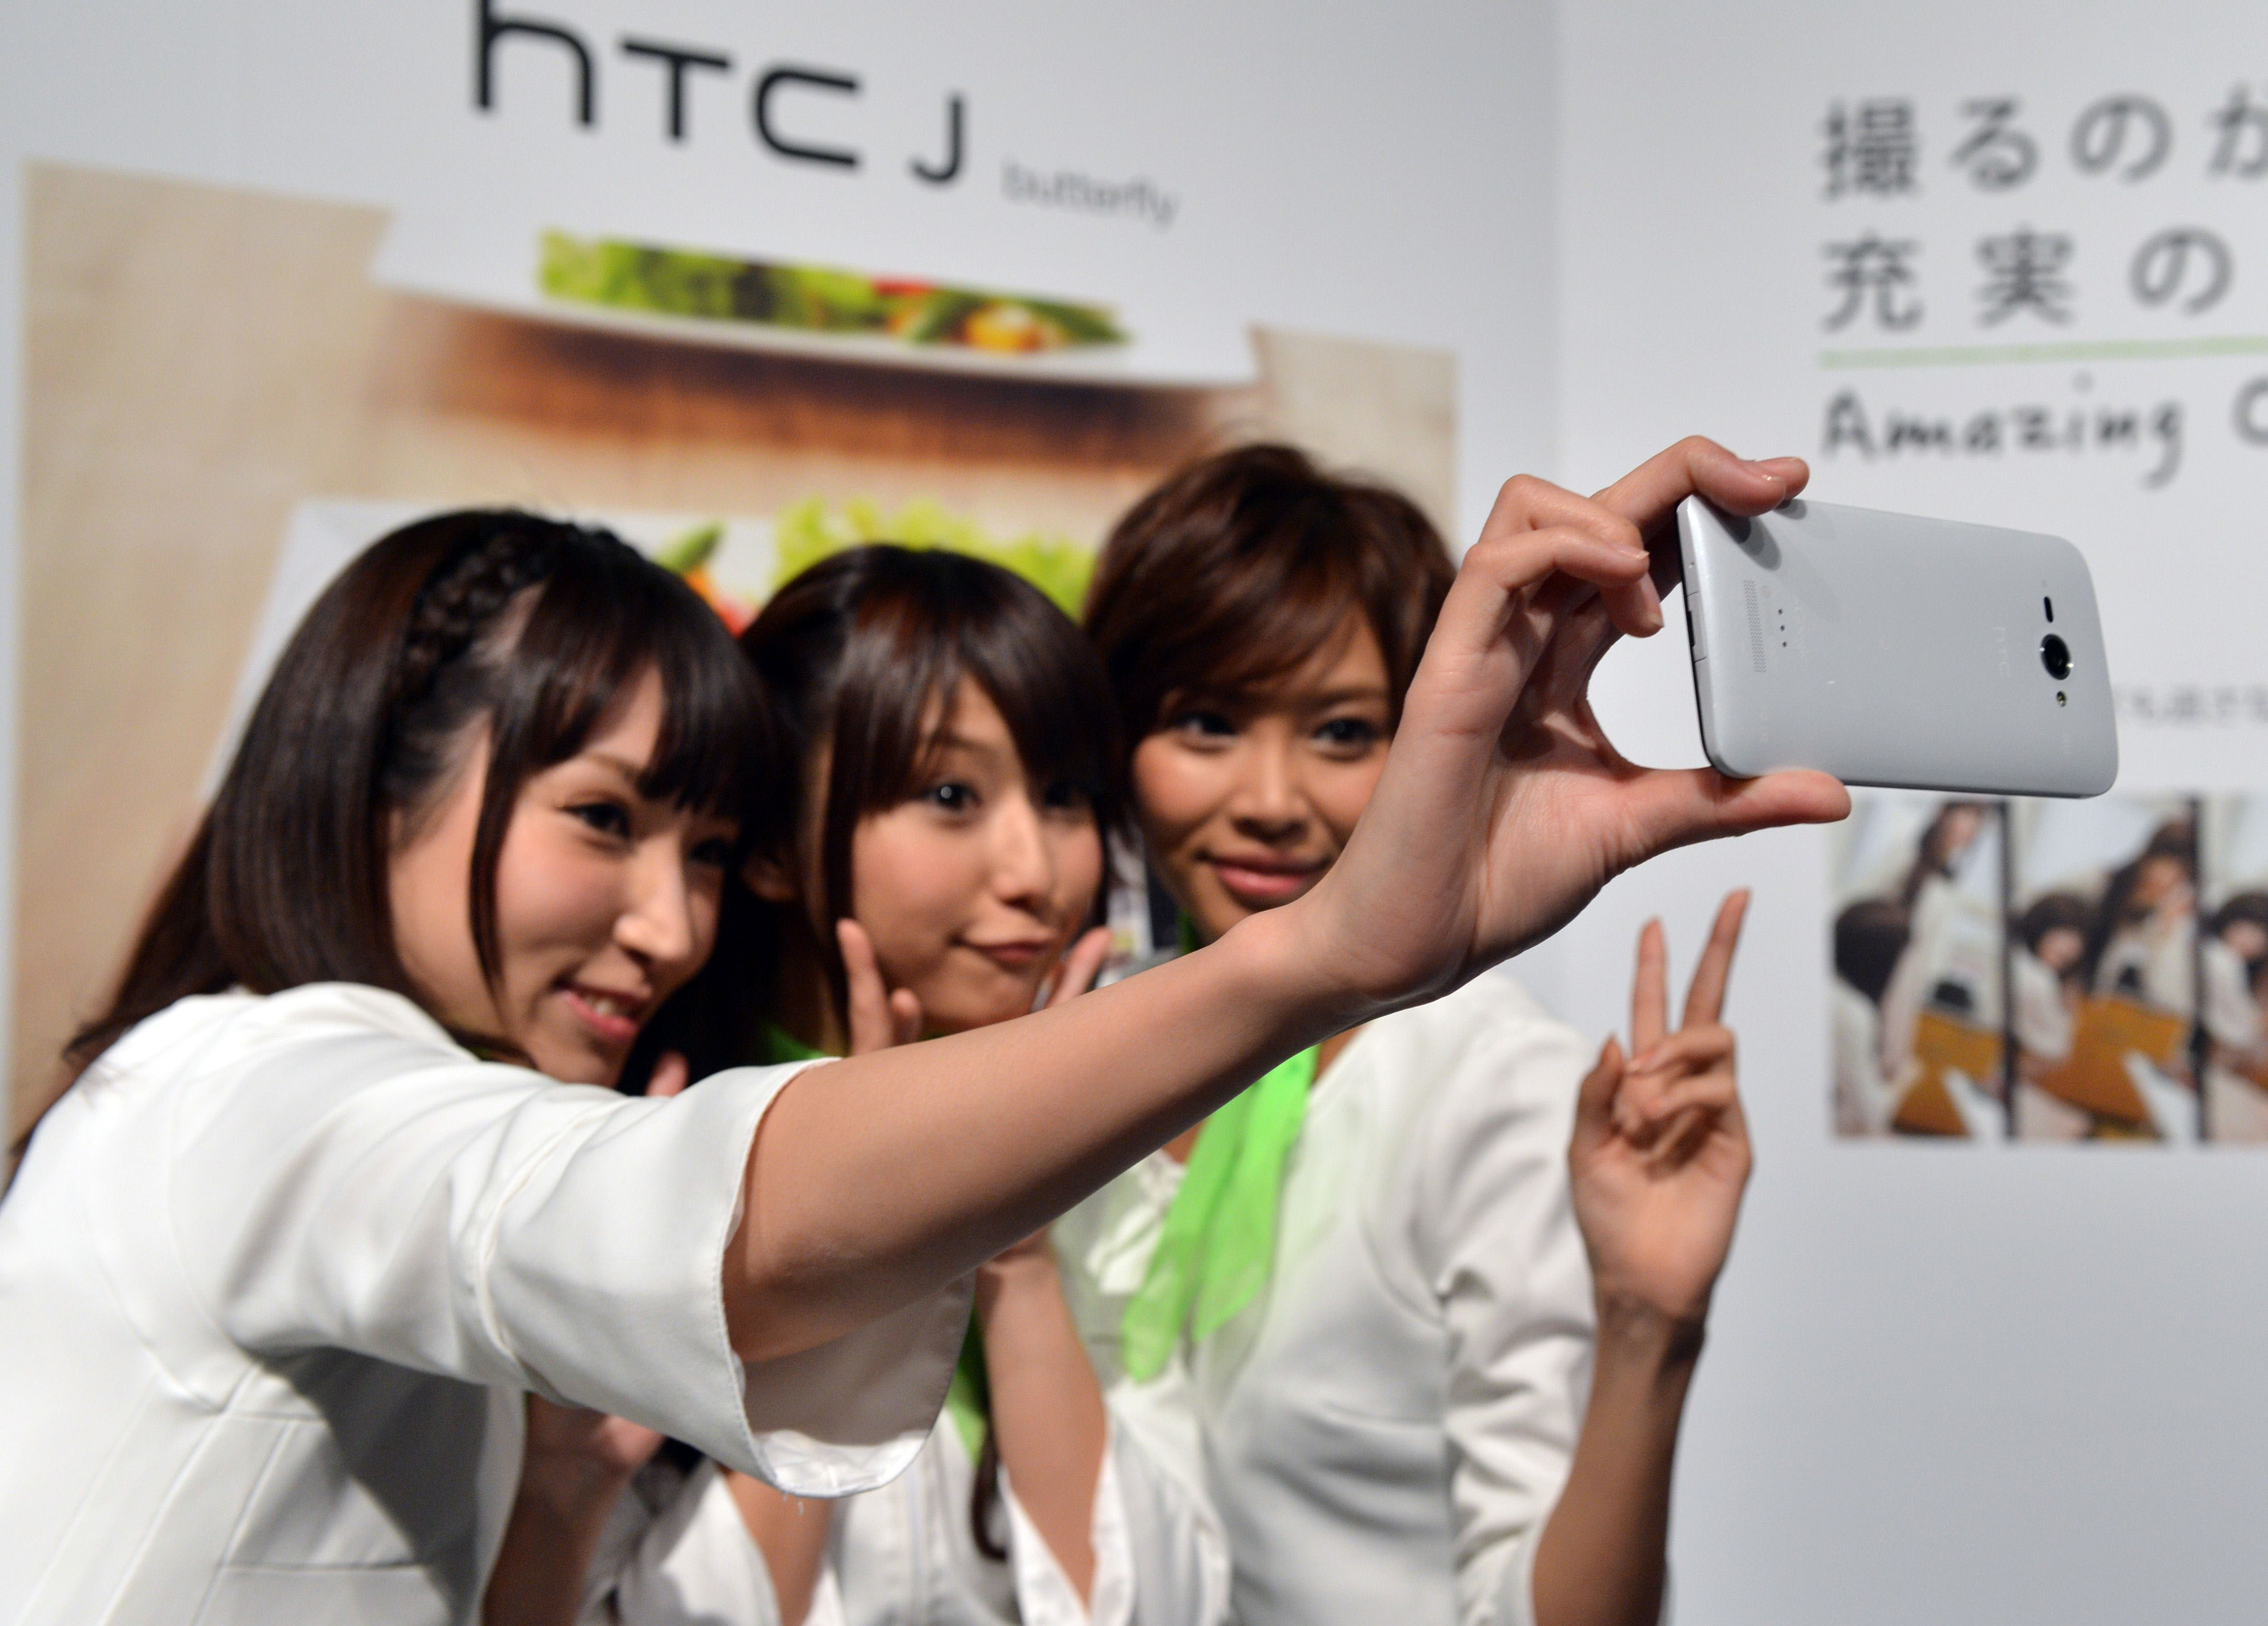 All in one: Models take a self-portrait with a new 8-megapixel camera/smartphone called the HTC J butterfly, produced by Taiwanese electronics maker HTC, in Tokyo on Nov. 20. The soaring popularity of smartphones is crushing demand for point-and-shoot cameras as territorial disputes put pressure on sales. | AFP-JIJI